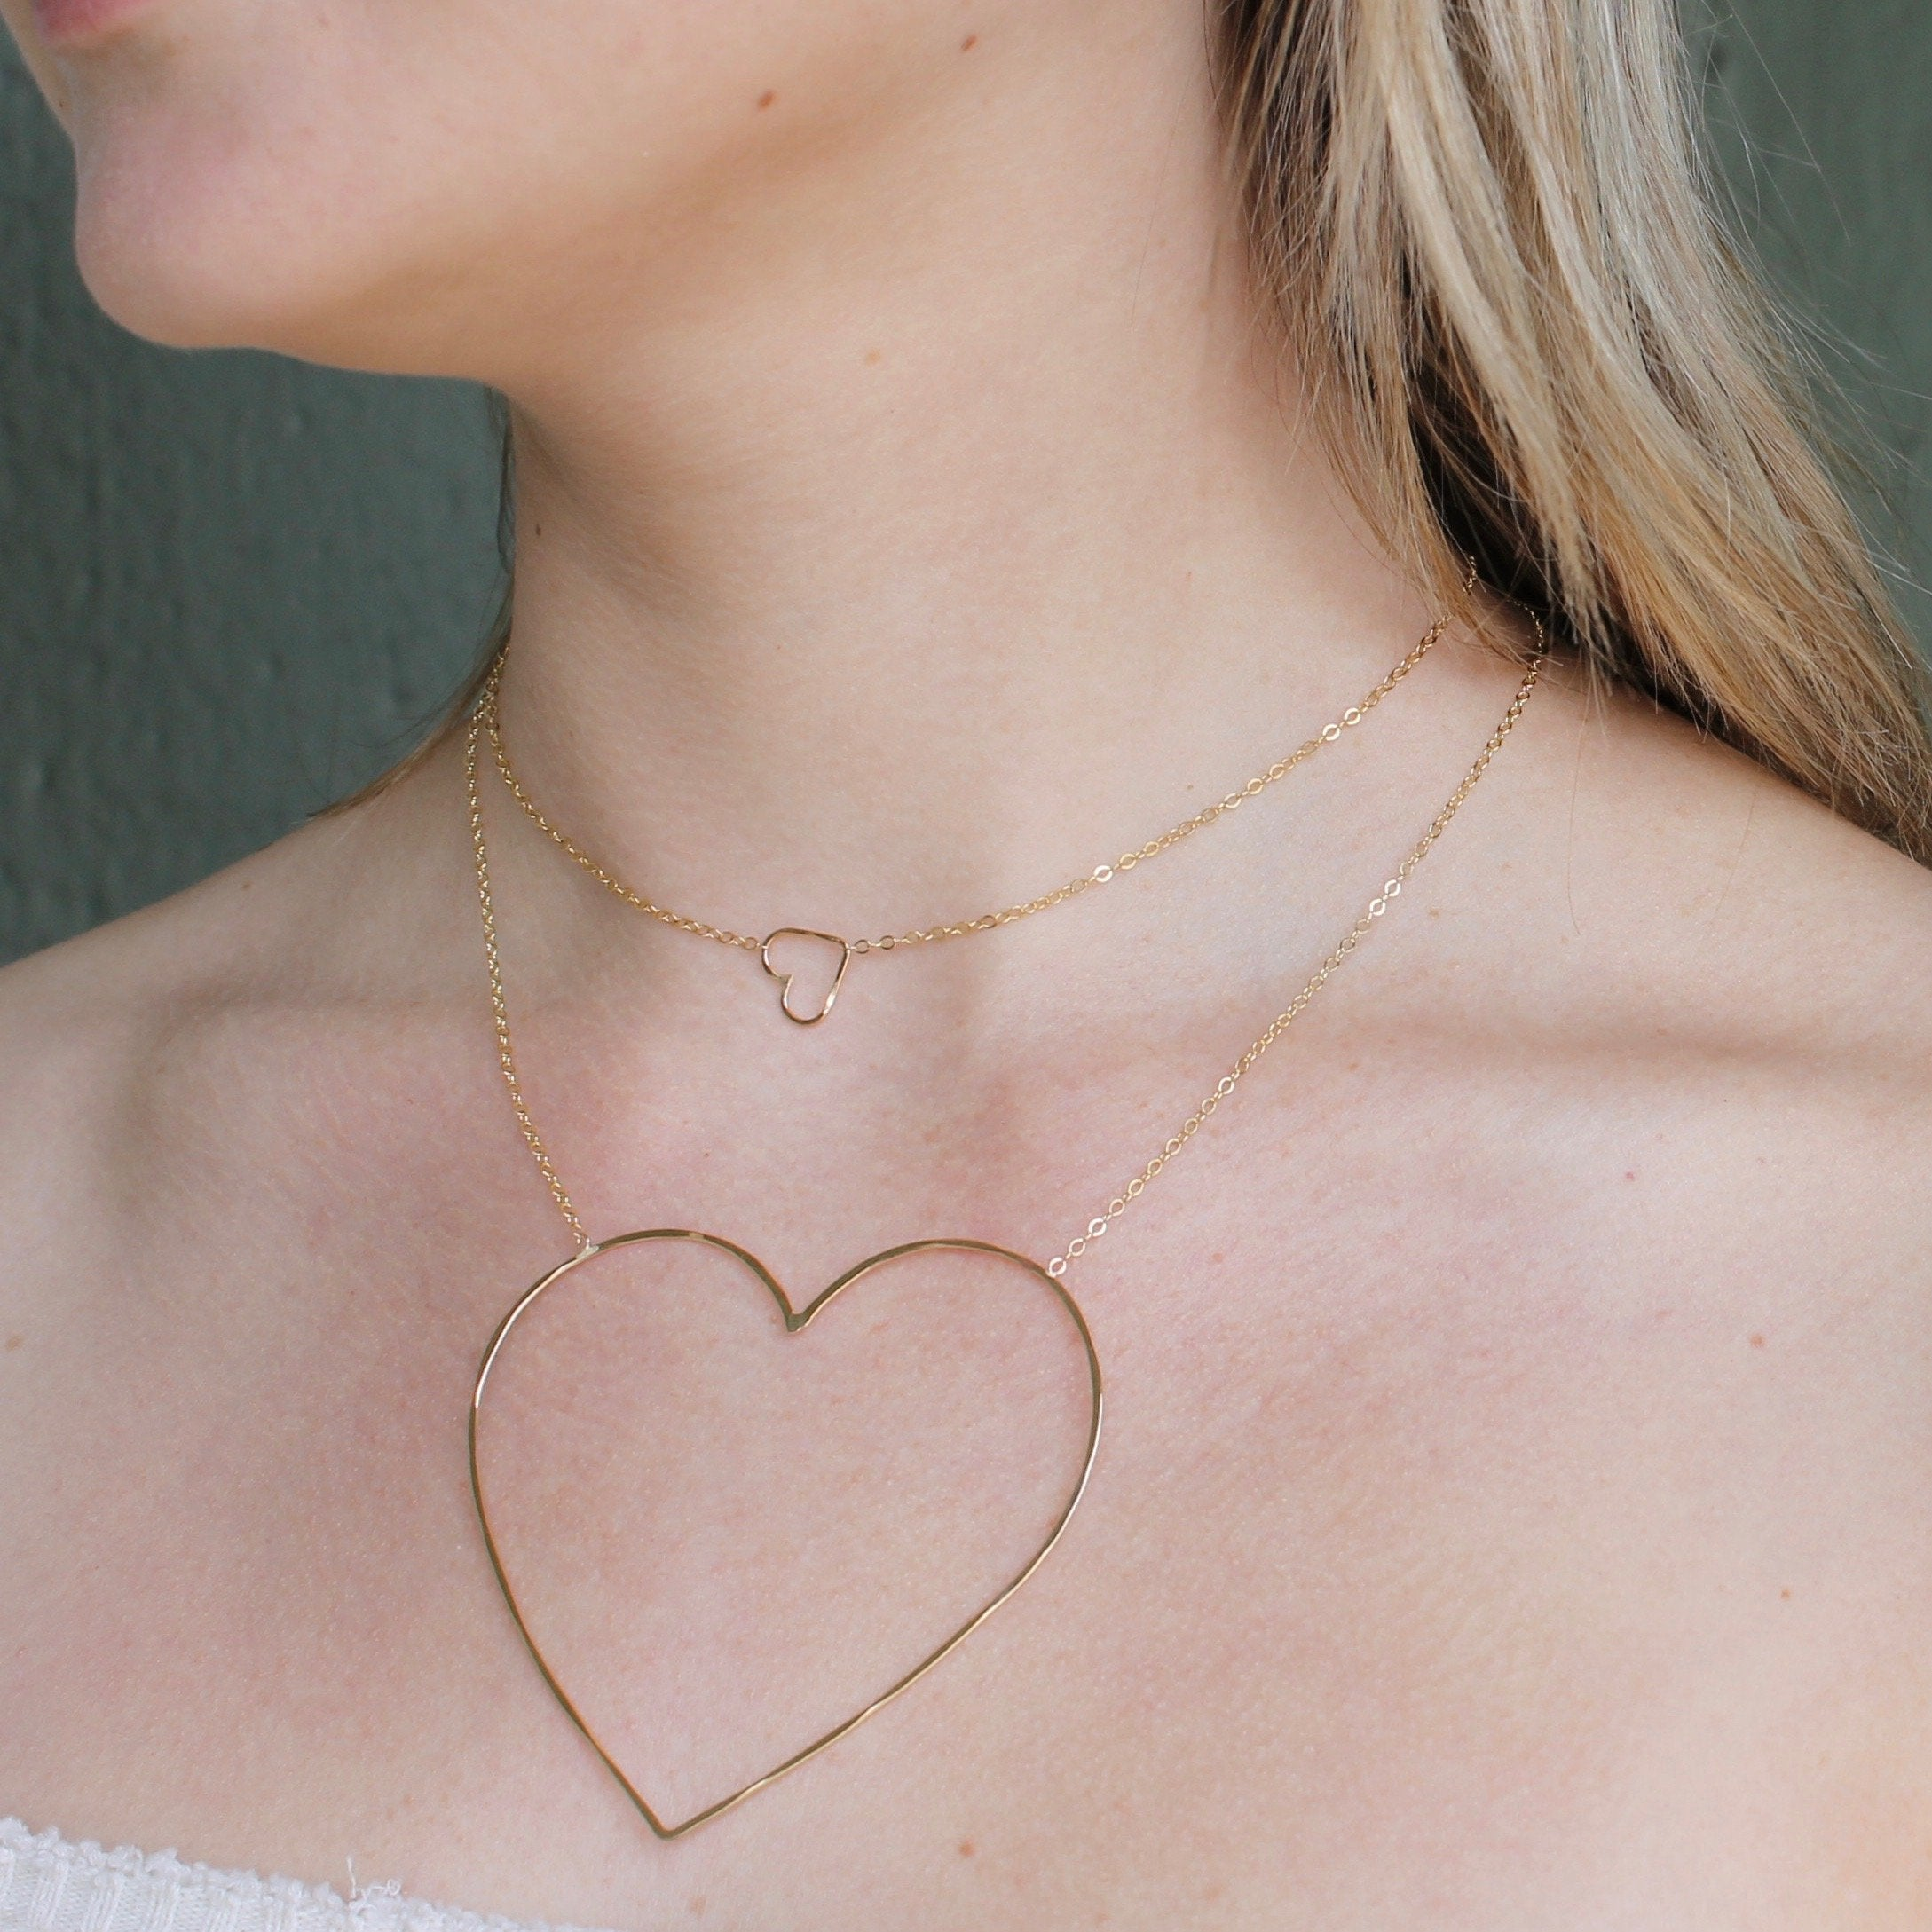 Heart of Gold Necklace Set